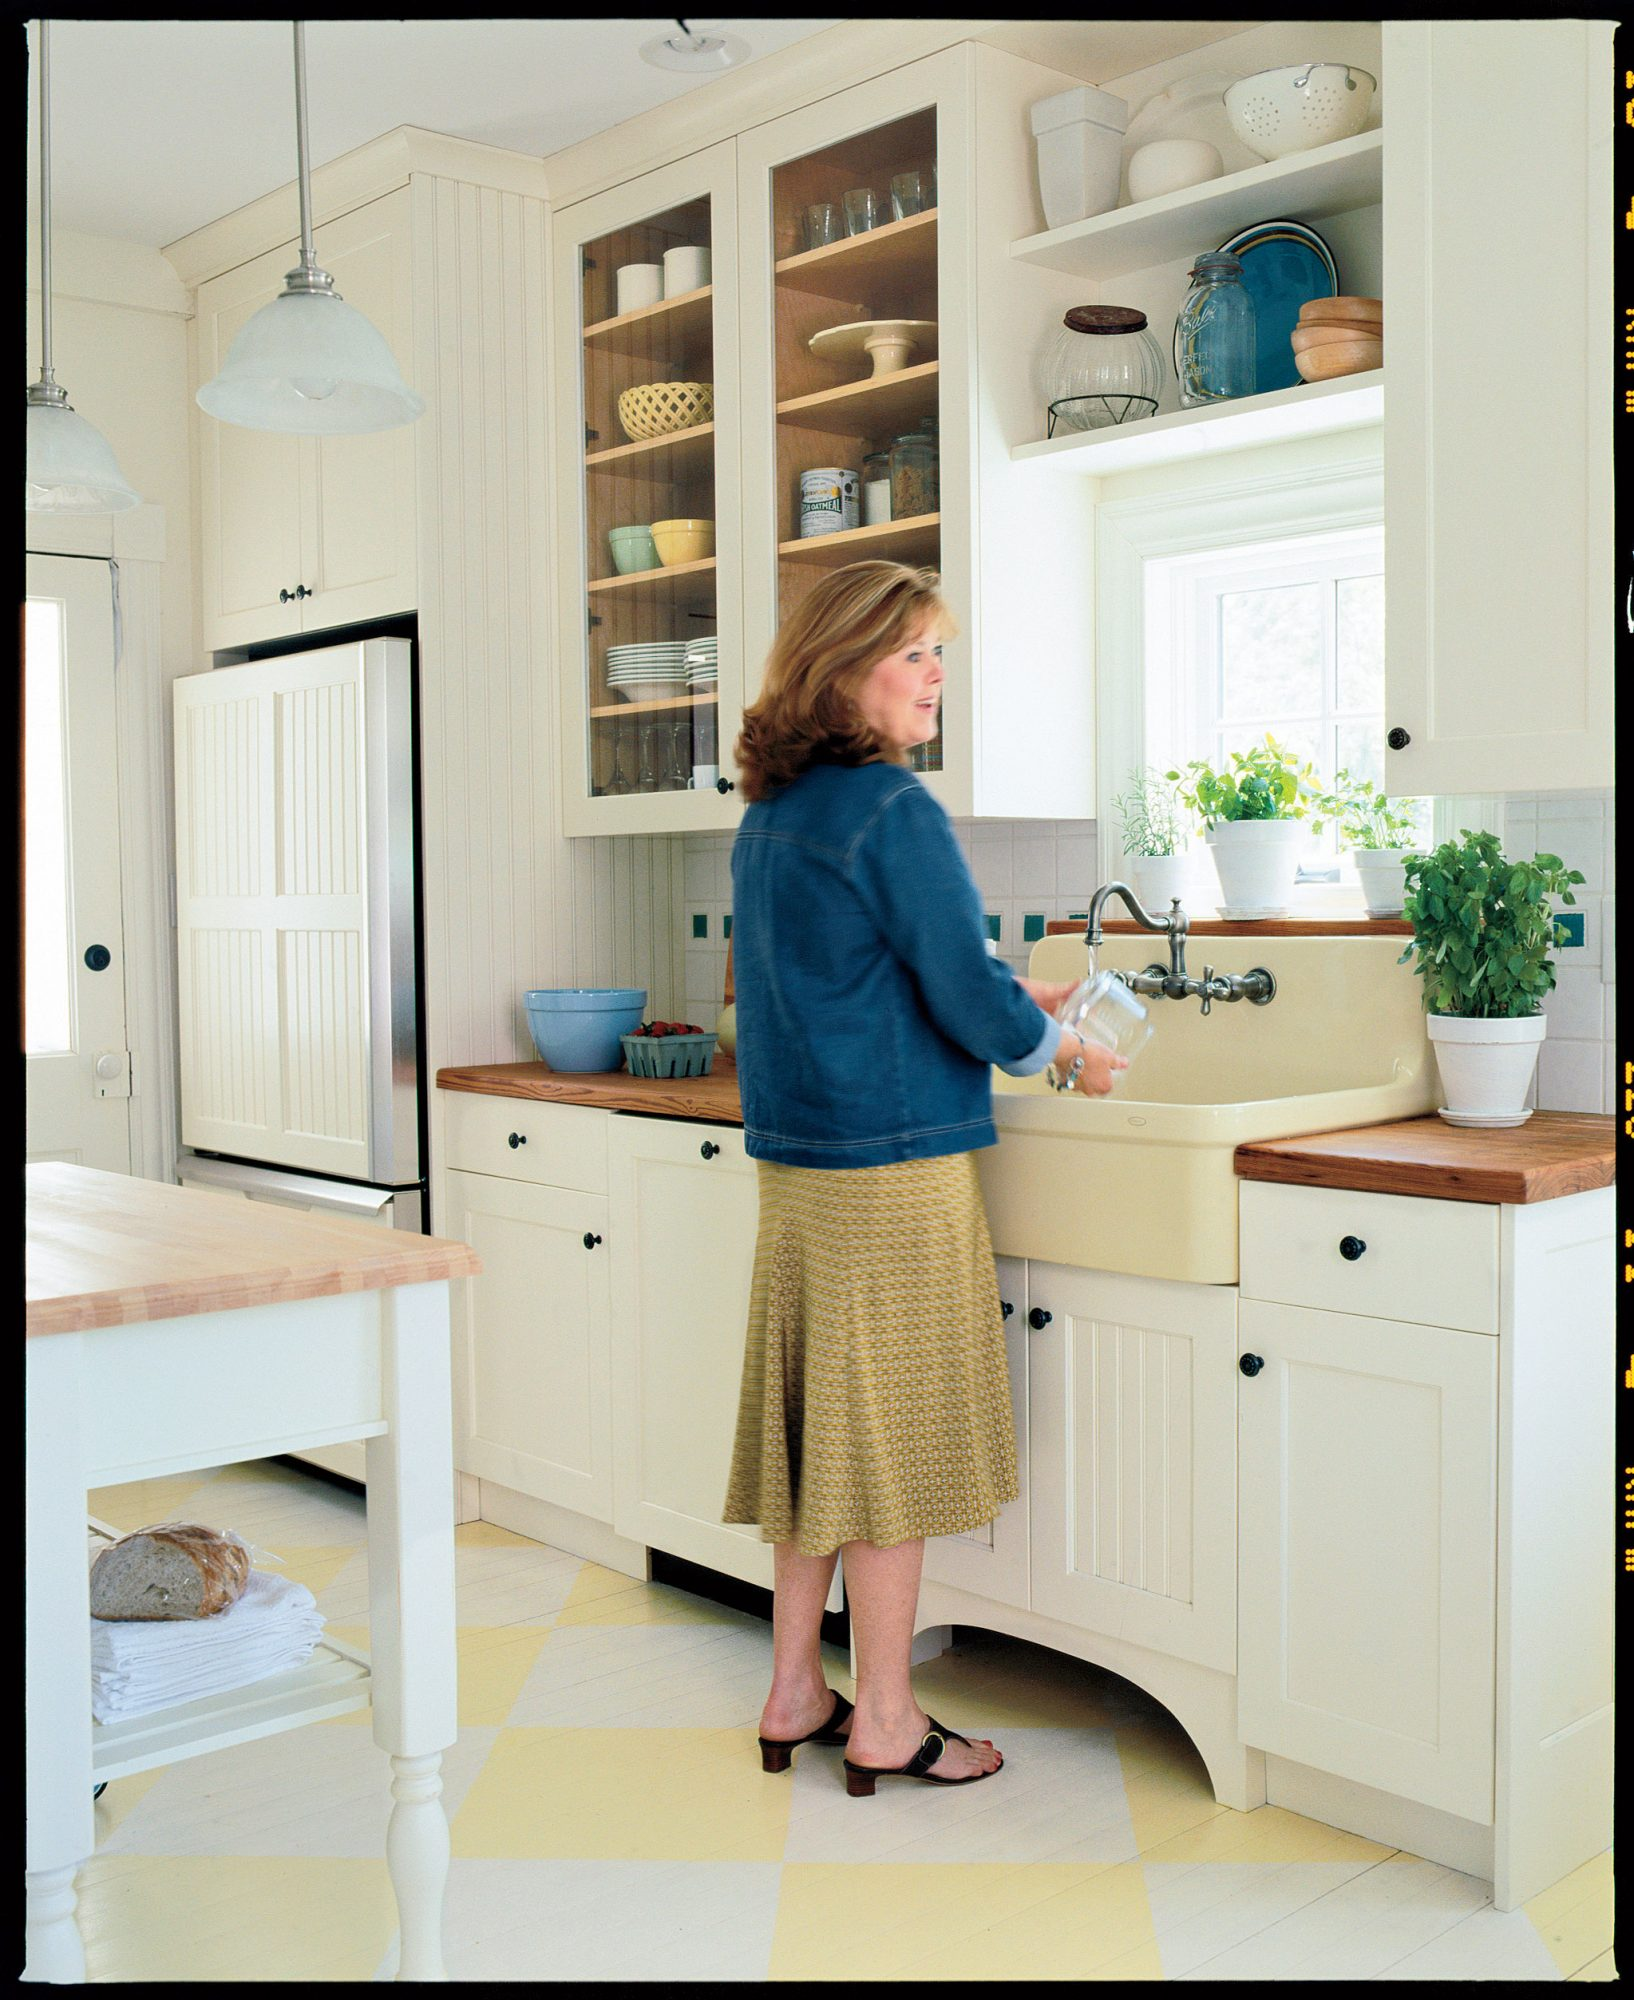 Farm Kitchen Remodeling Ideas: Reviving an 1875 Kitchen